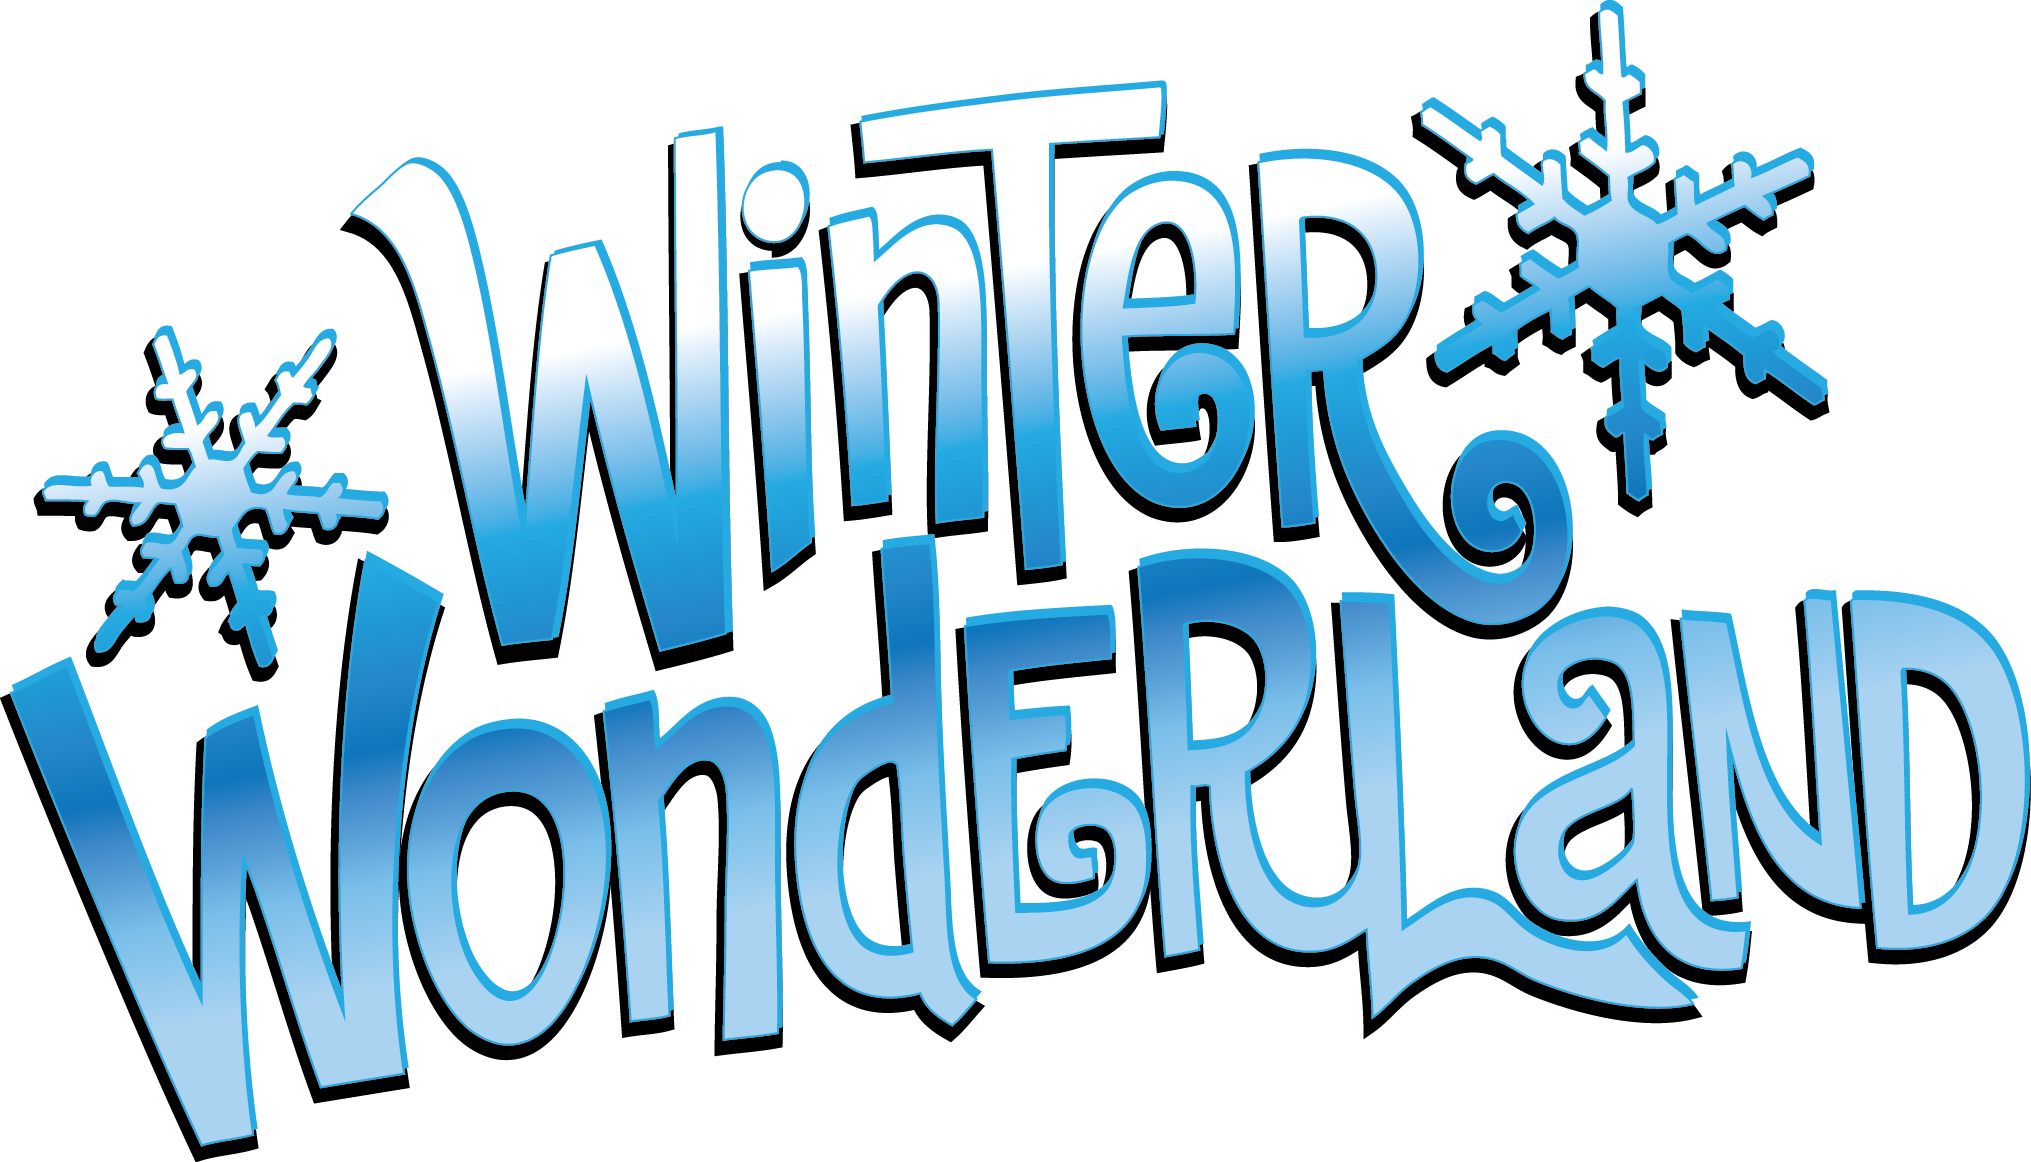 clipart library Walking in a winter wonderland clipart. Free download best x